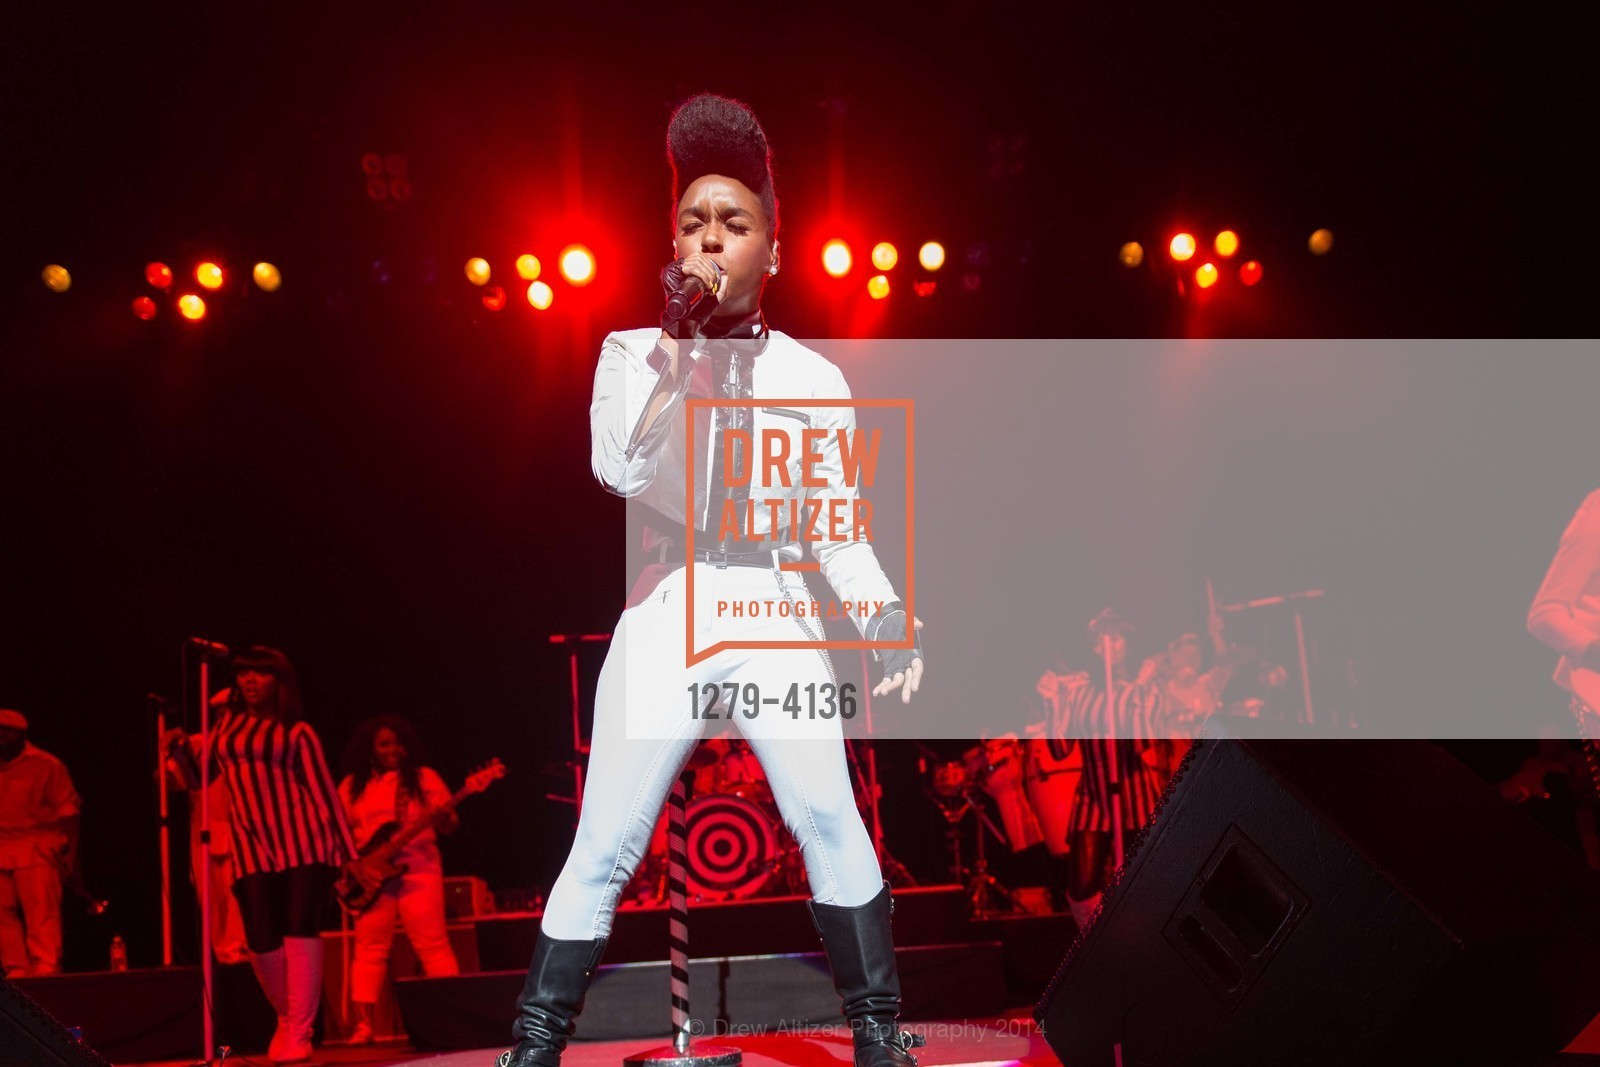 Performance By Janelle Monae, Photo #1279-4136